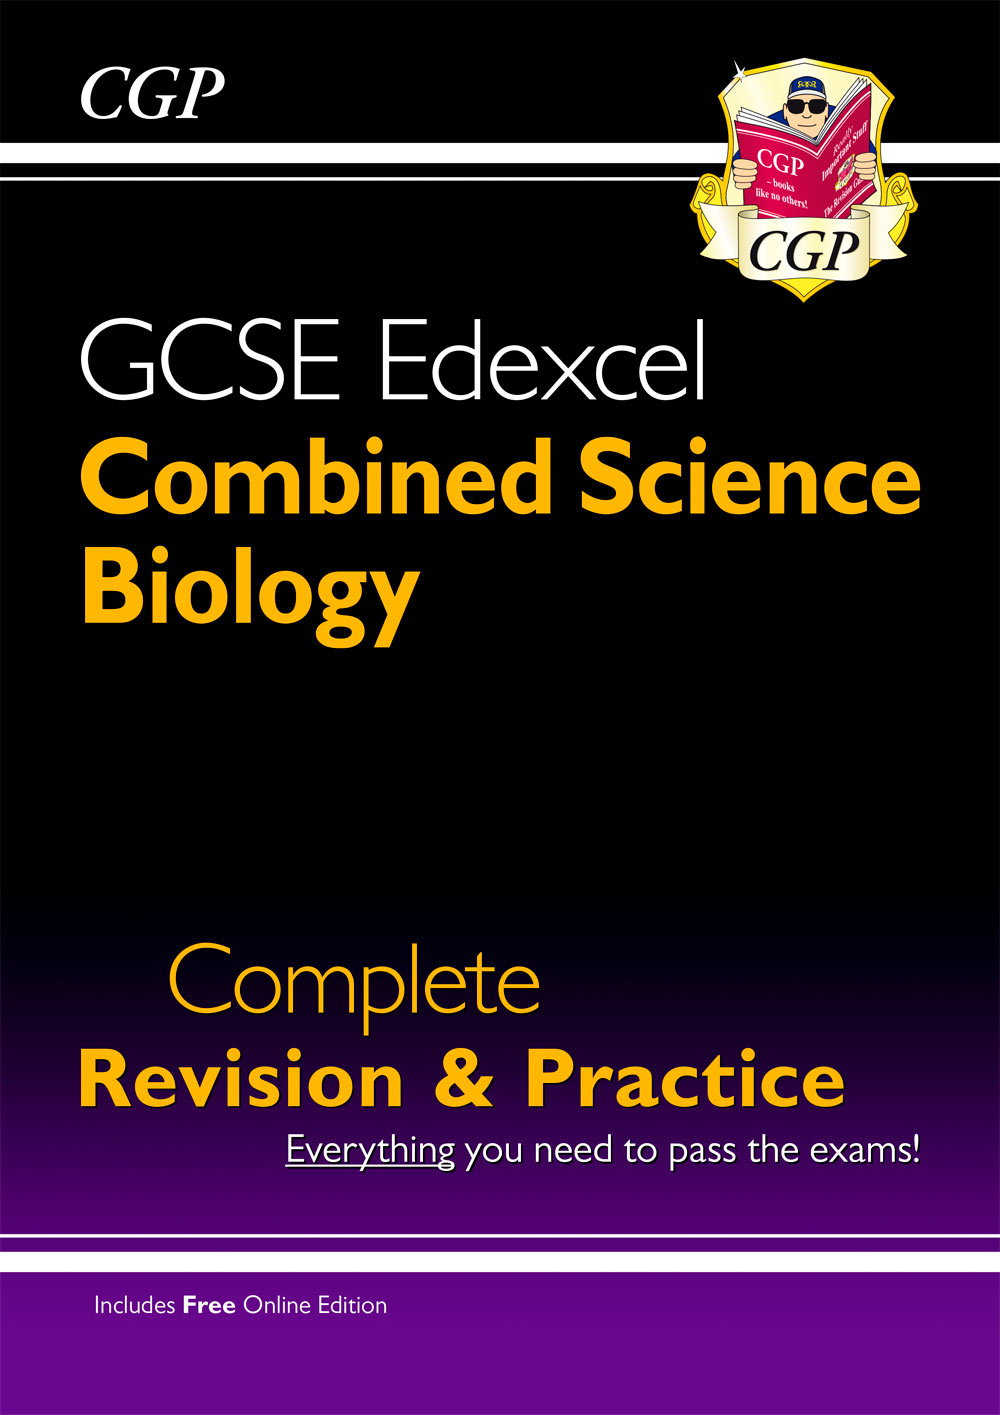 SCBES41 - Grade 9-1 GCSE Combined Science: Biology Edexcel Complete Revision & Practice with Online